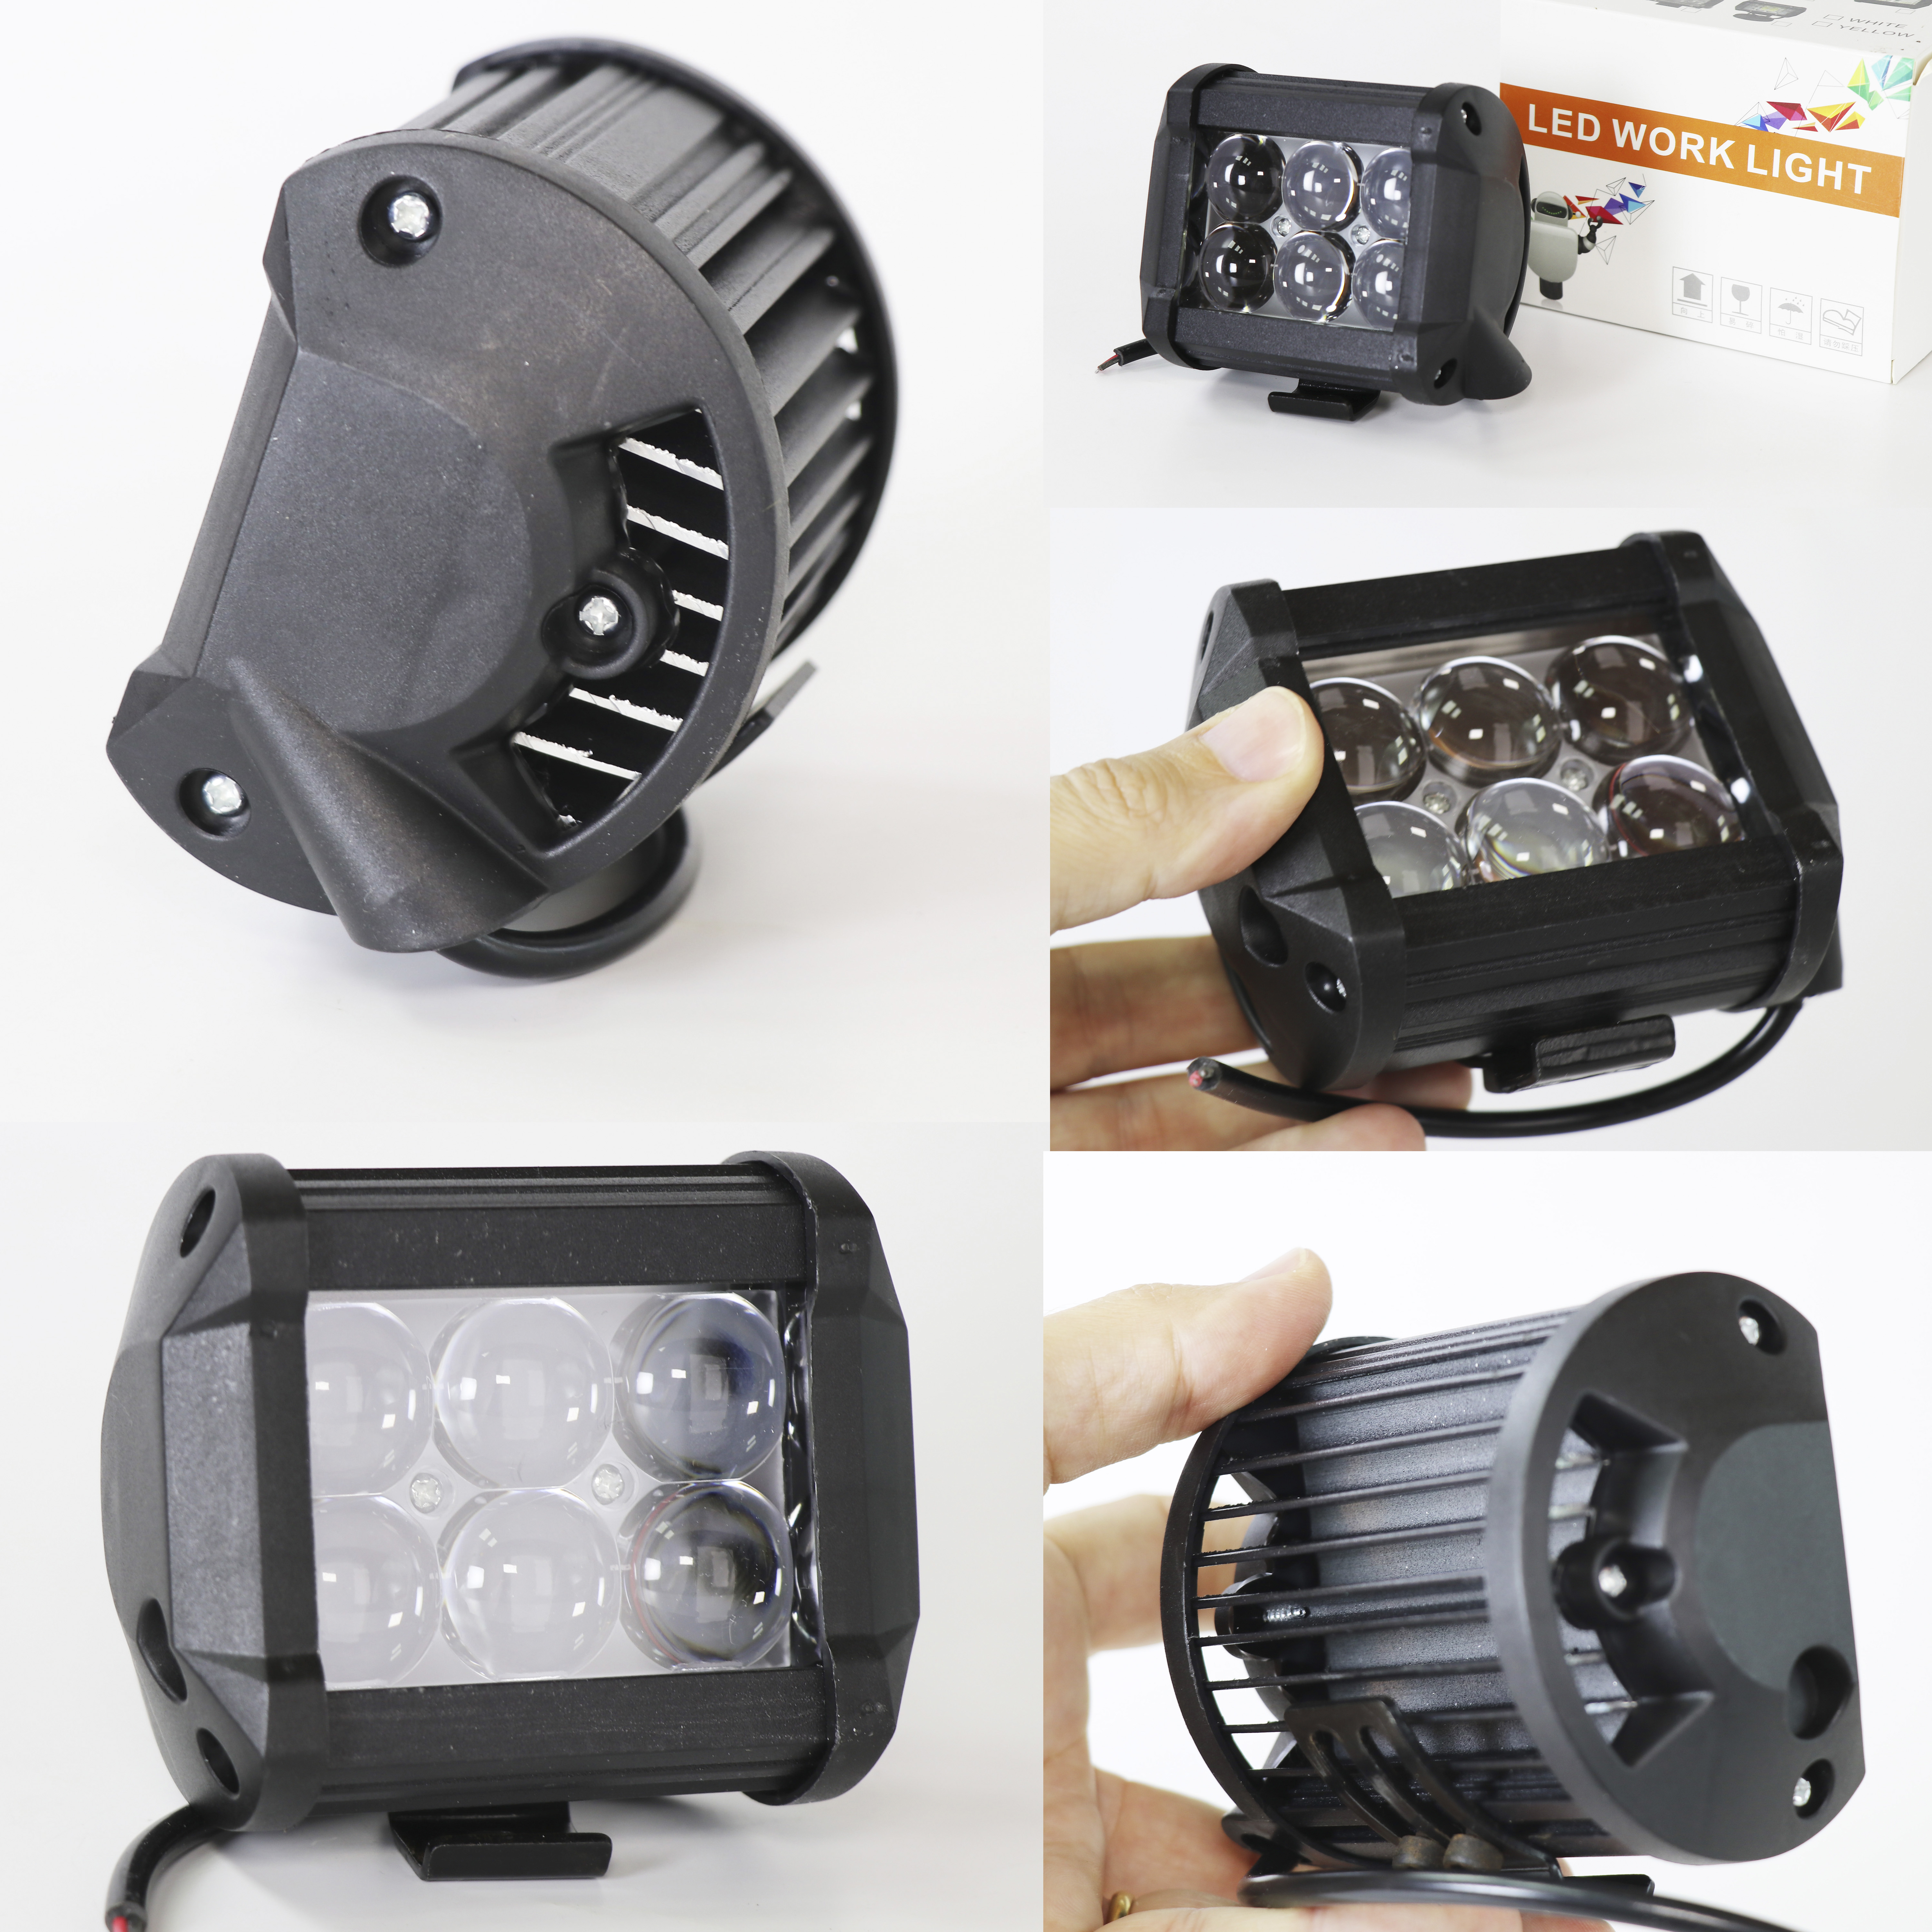 ELG REFLECTOR 18W 6LED GATHERING LIGHT JGT 18W 6LED